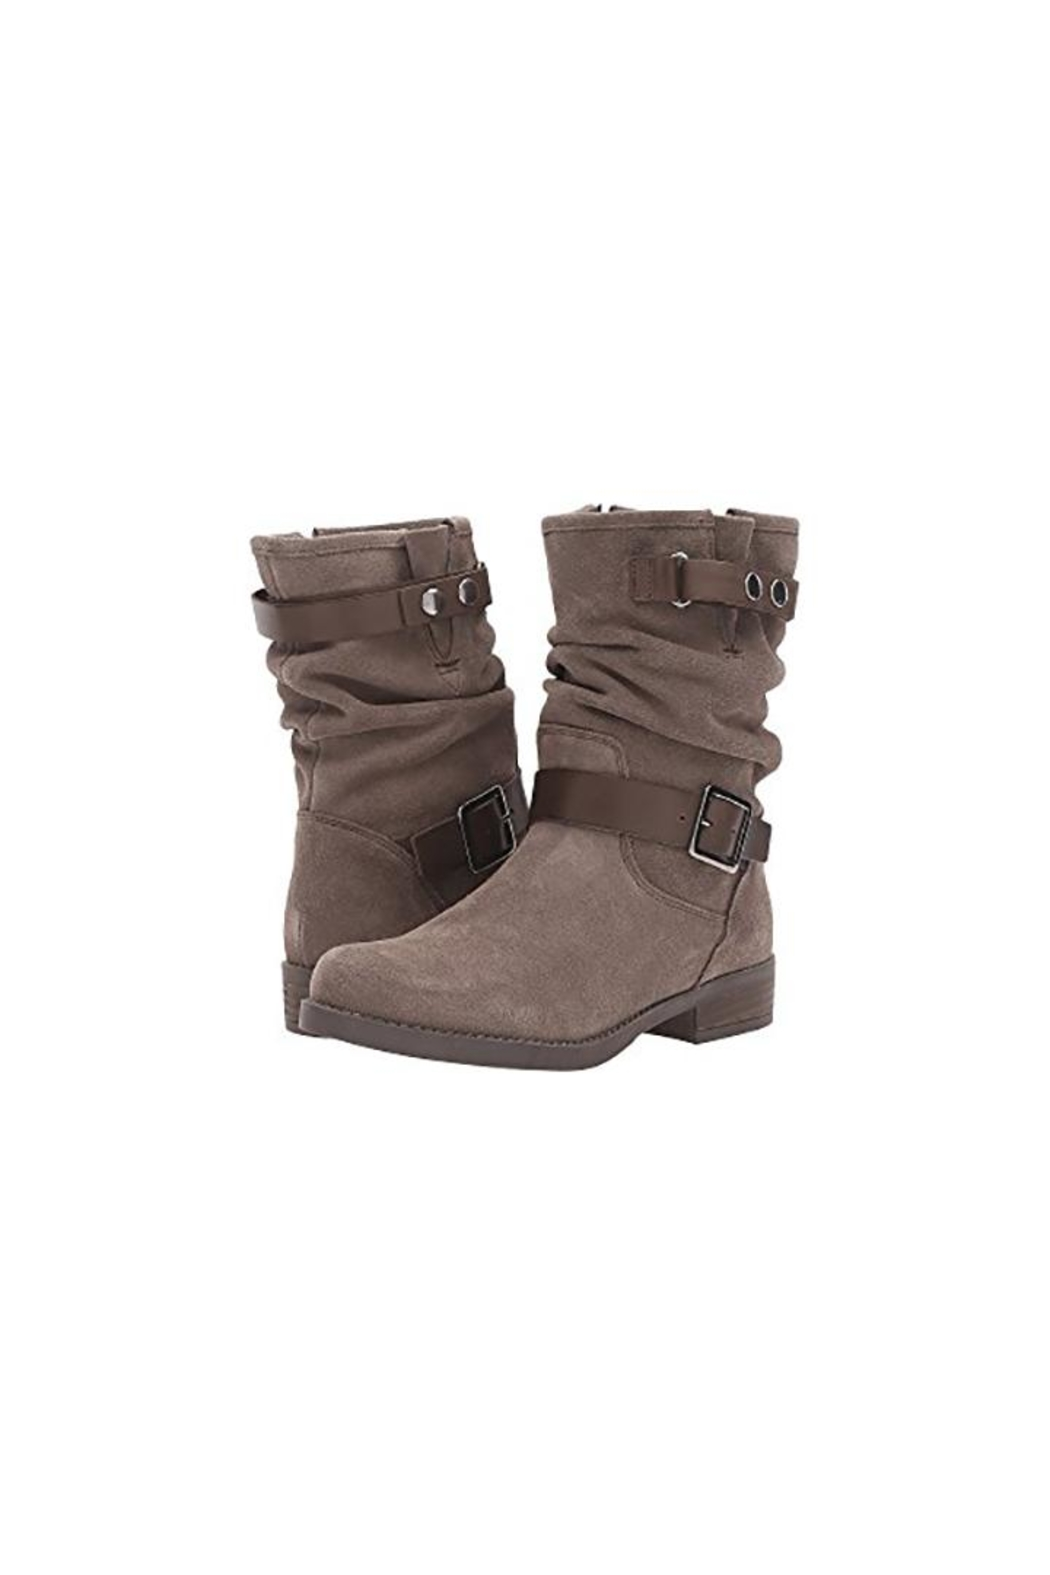 Eric Michael Venice Suede Slouch-Boot - Front Full Image